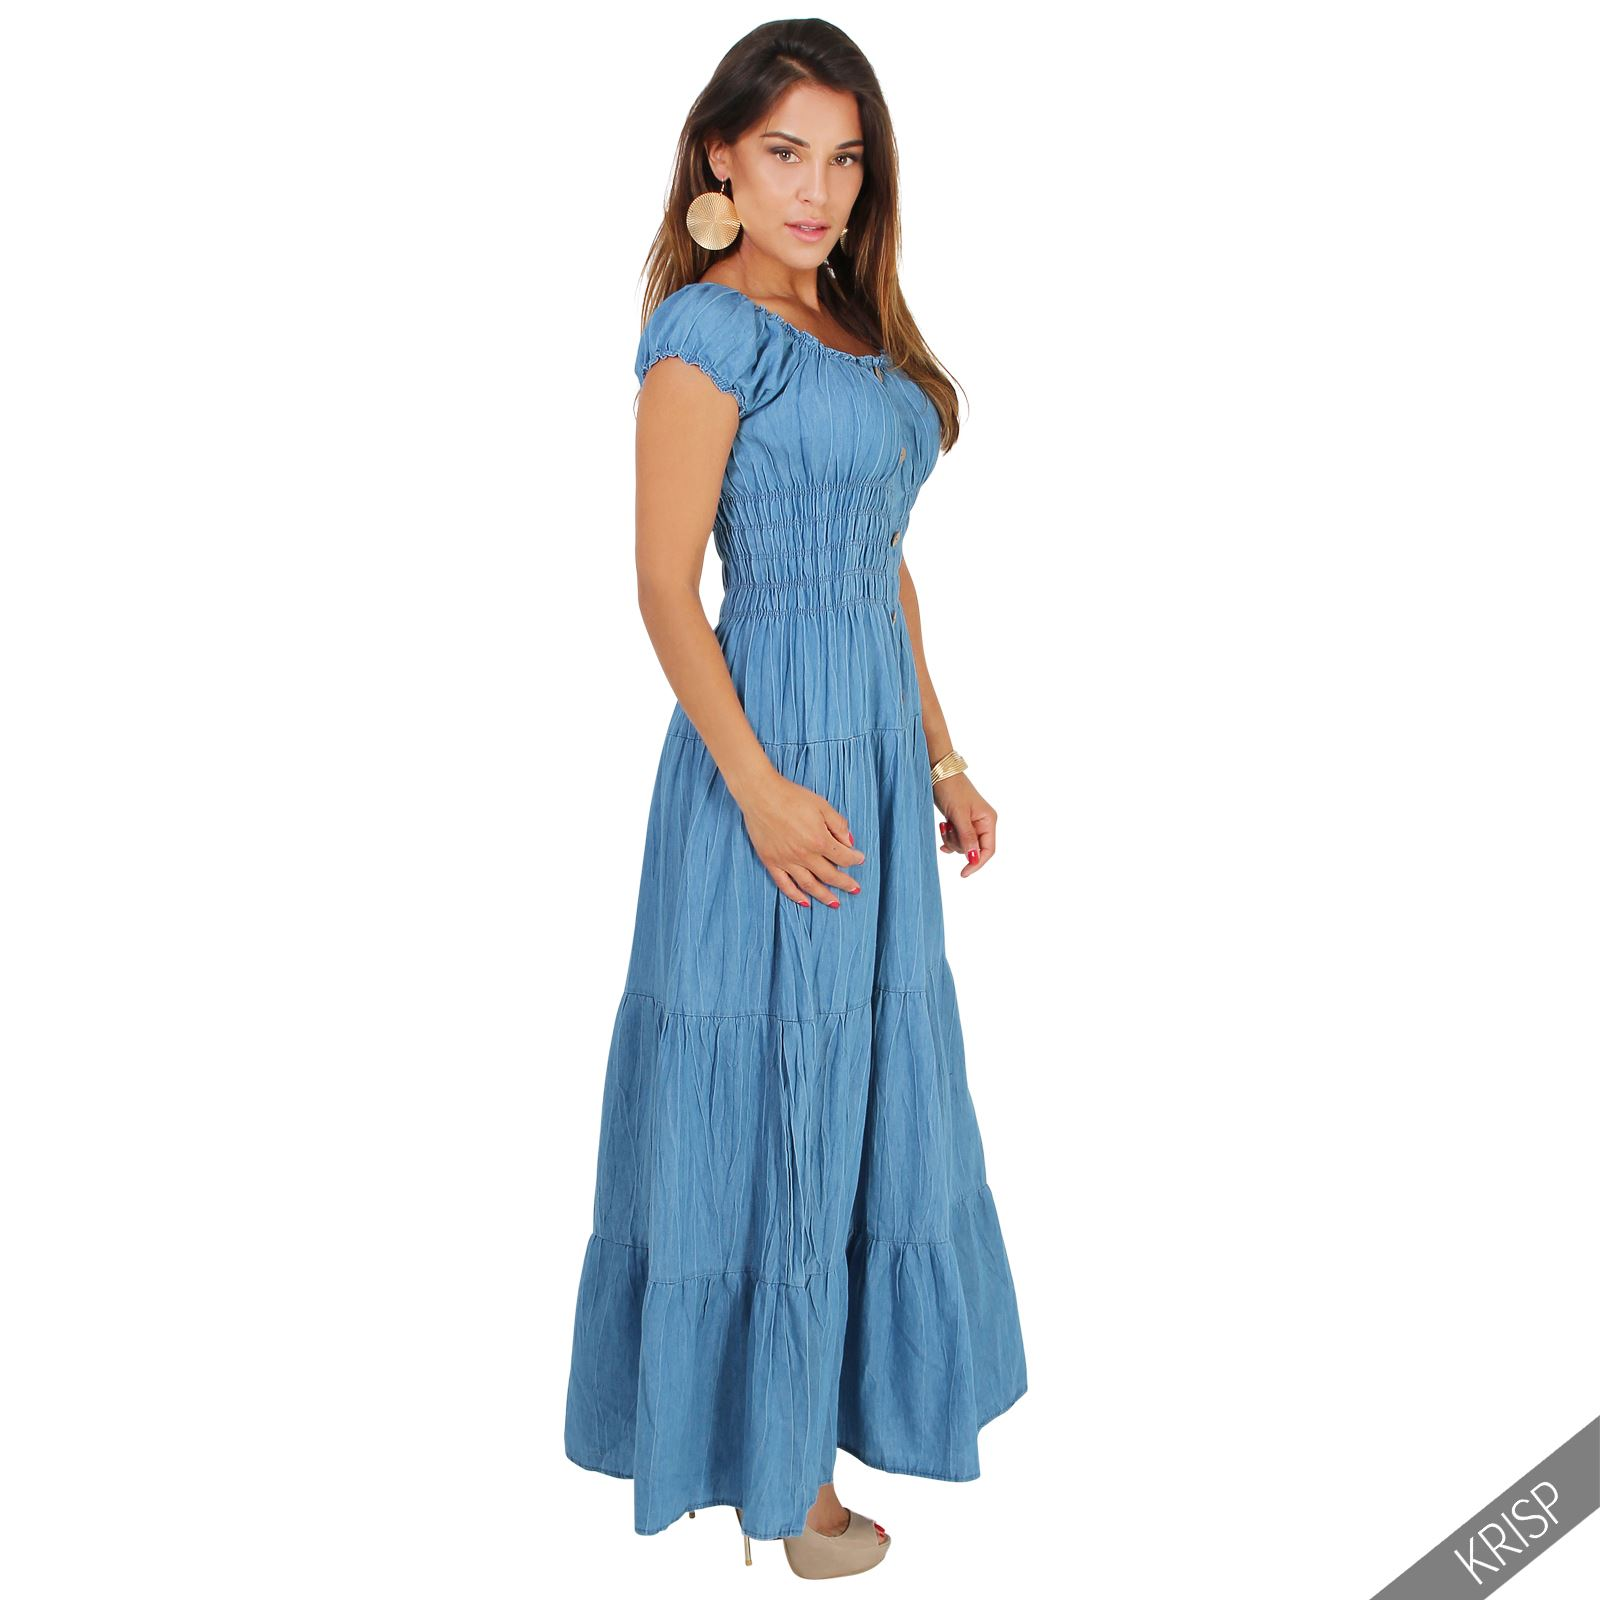 At flip13bubble.tk we have a huge selection of cowgirl dresses and skirts that are perfect for every occasion. Whether you are looking for a striking solid color dress to stand out in the crowd or are more of a classic denim girl, our shop by style feature makes it .